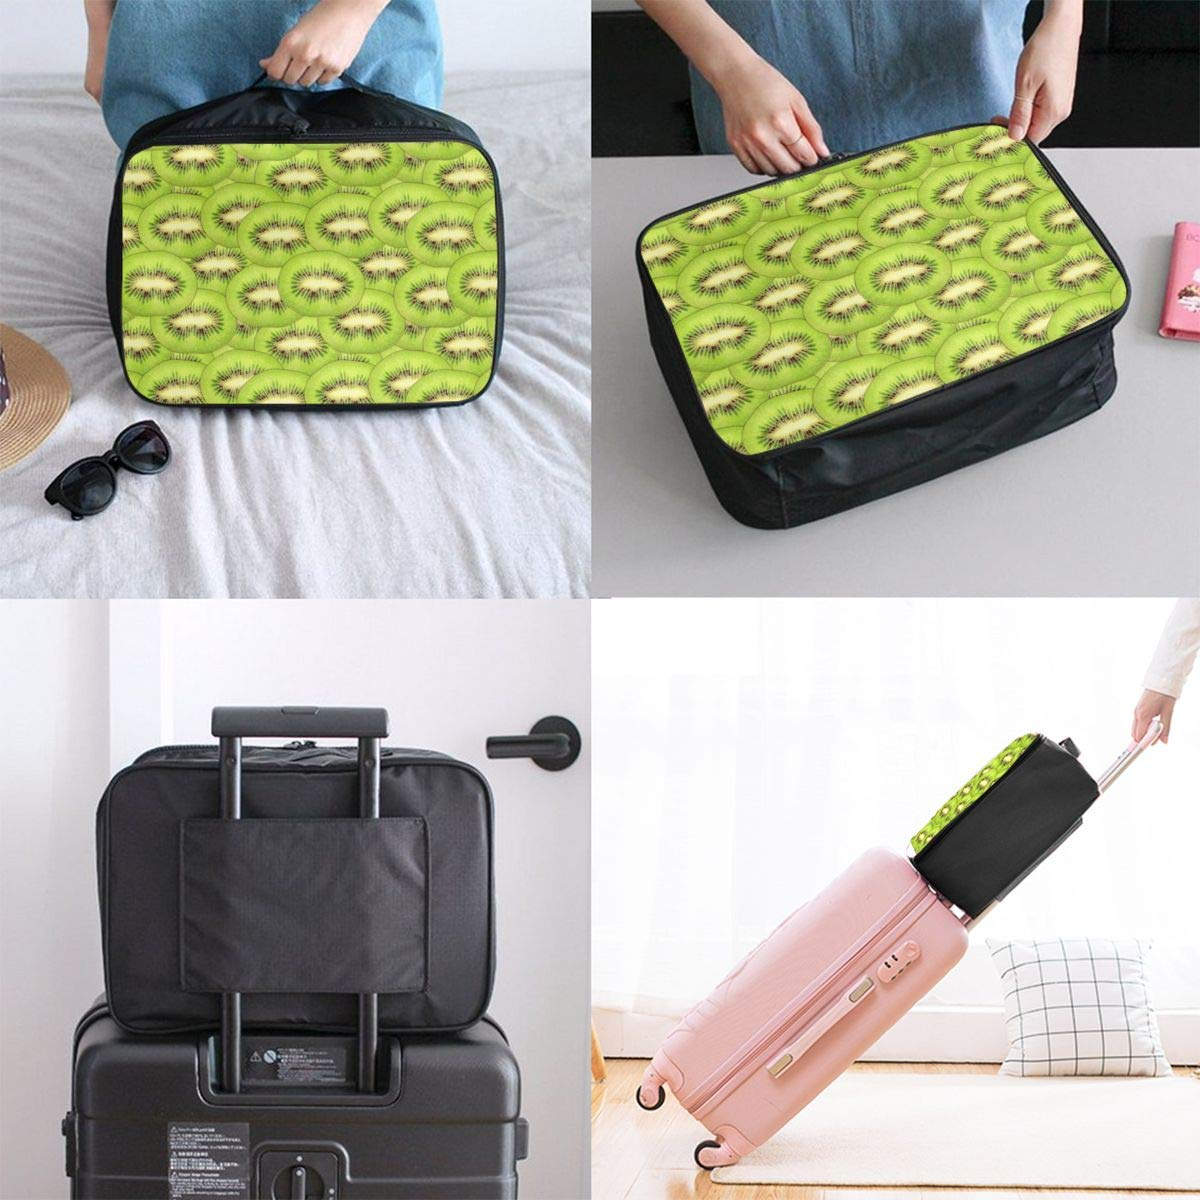 YueLJB Green Kiwi Fruit Pattern Lightweight Large Capacity Portable Luggage Bag Travel Duffel Bag Storage Carry Luggage Duffle Tote Bag